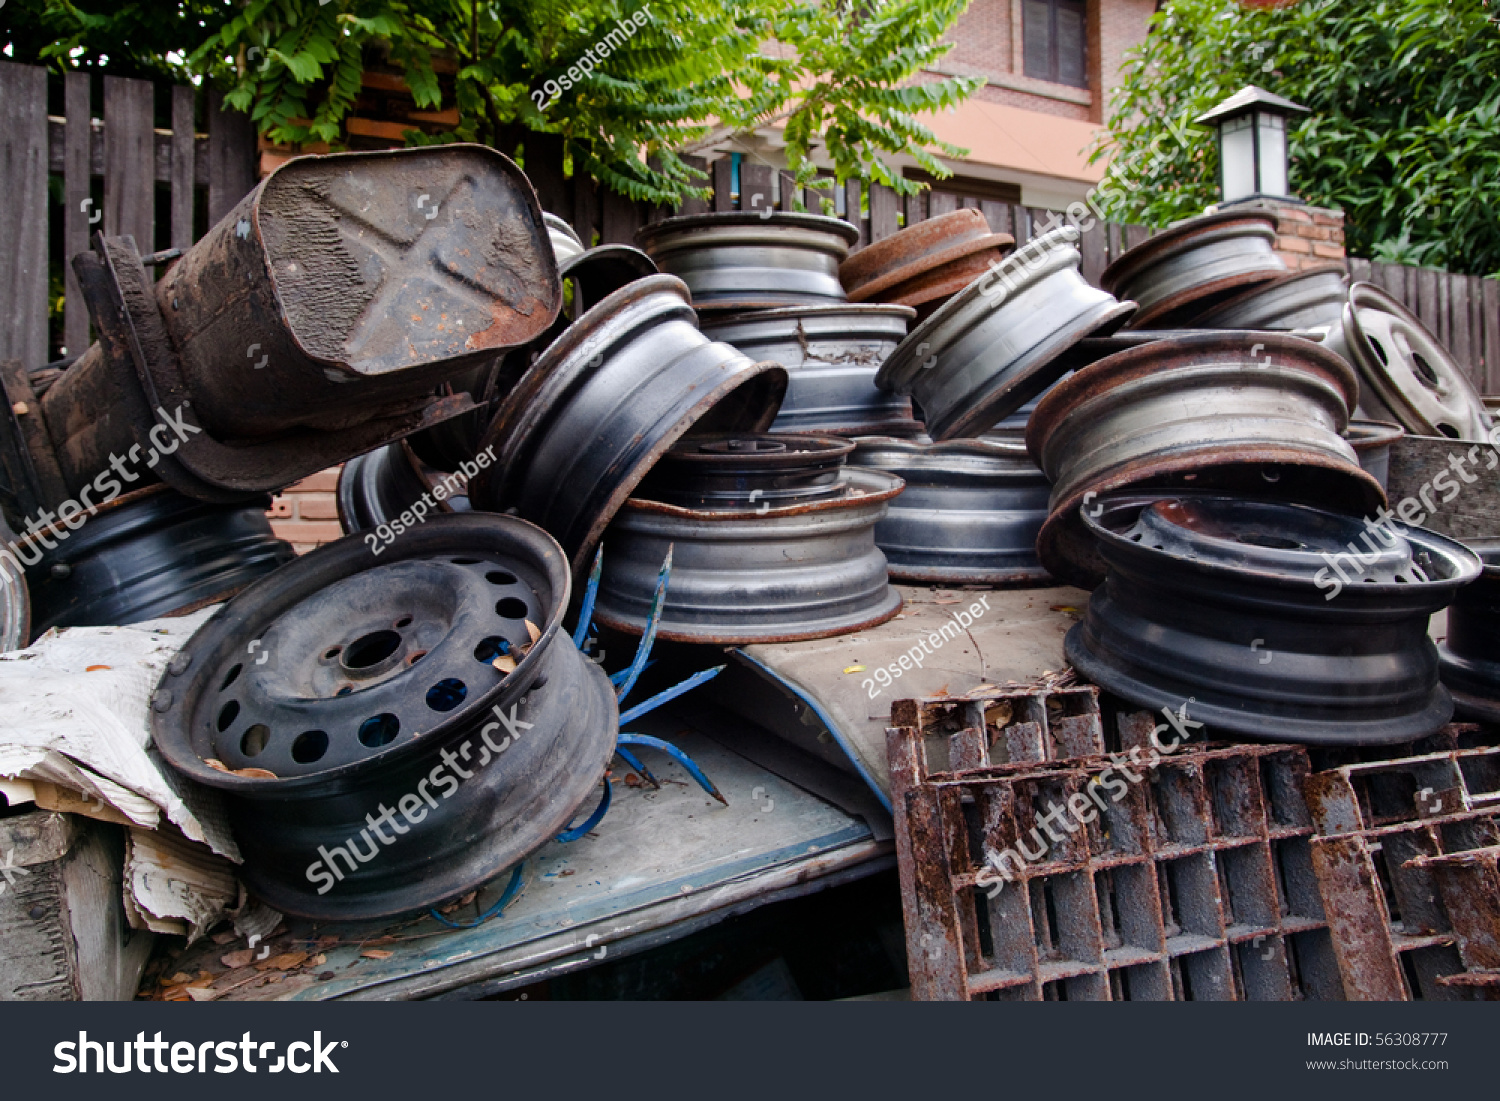 Metal Waste Scrap Old Car Parts Stock Photo 56308777 - Shutterstock